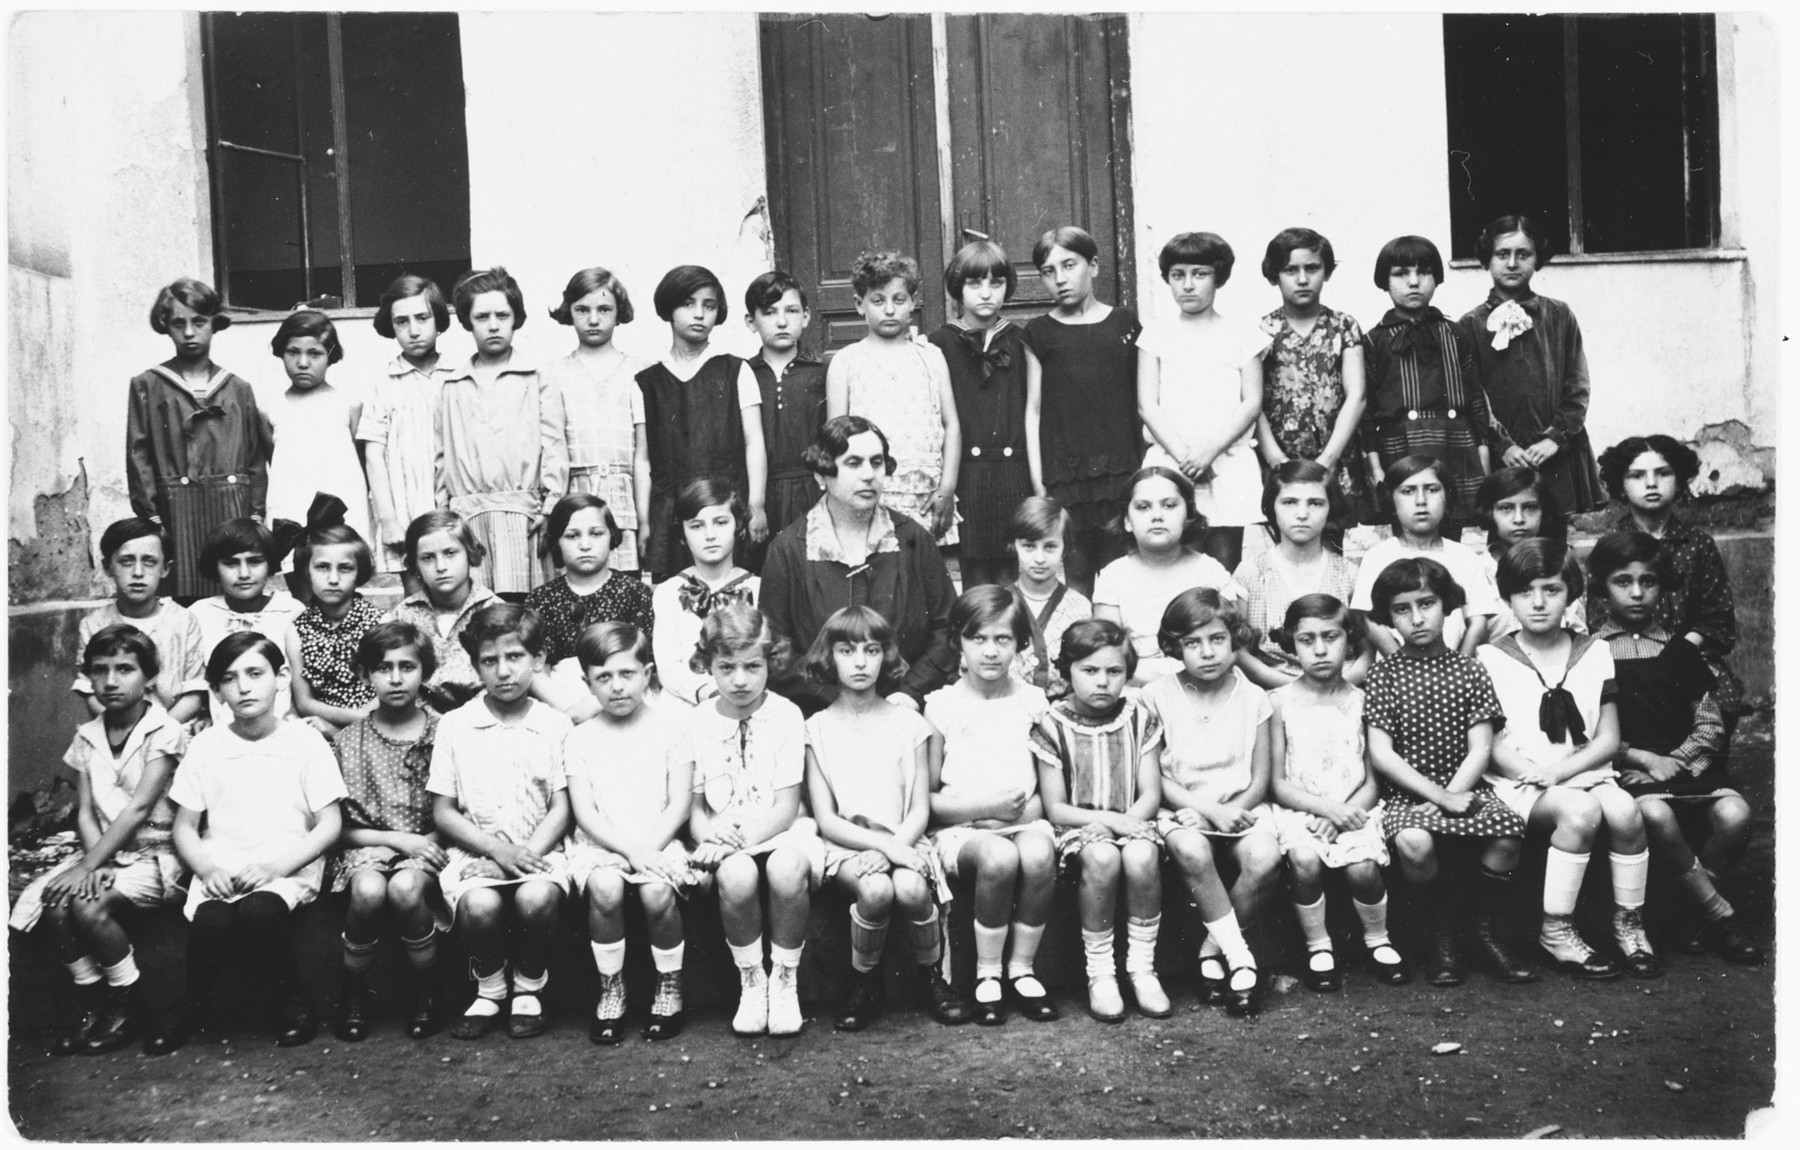 Girls in a school in Oradea, Romania.  Magda Grunfeld is pictured in the front row, center.